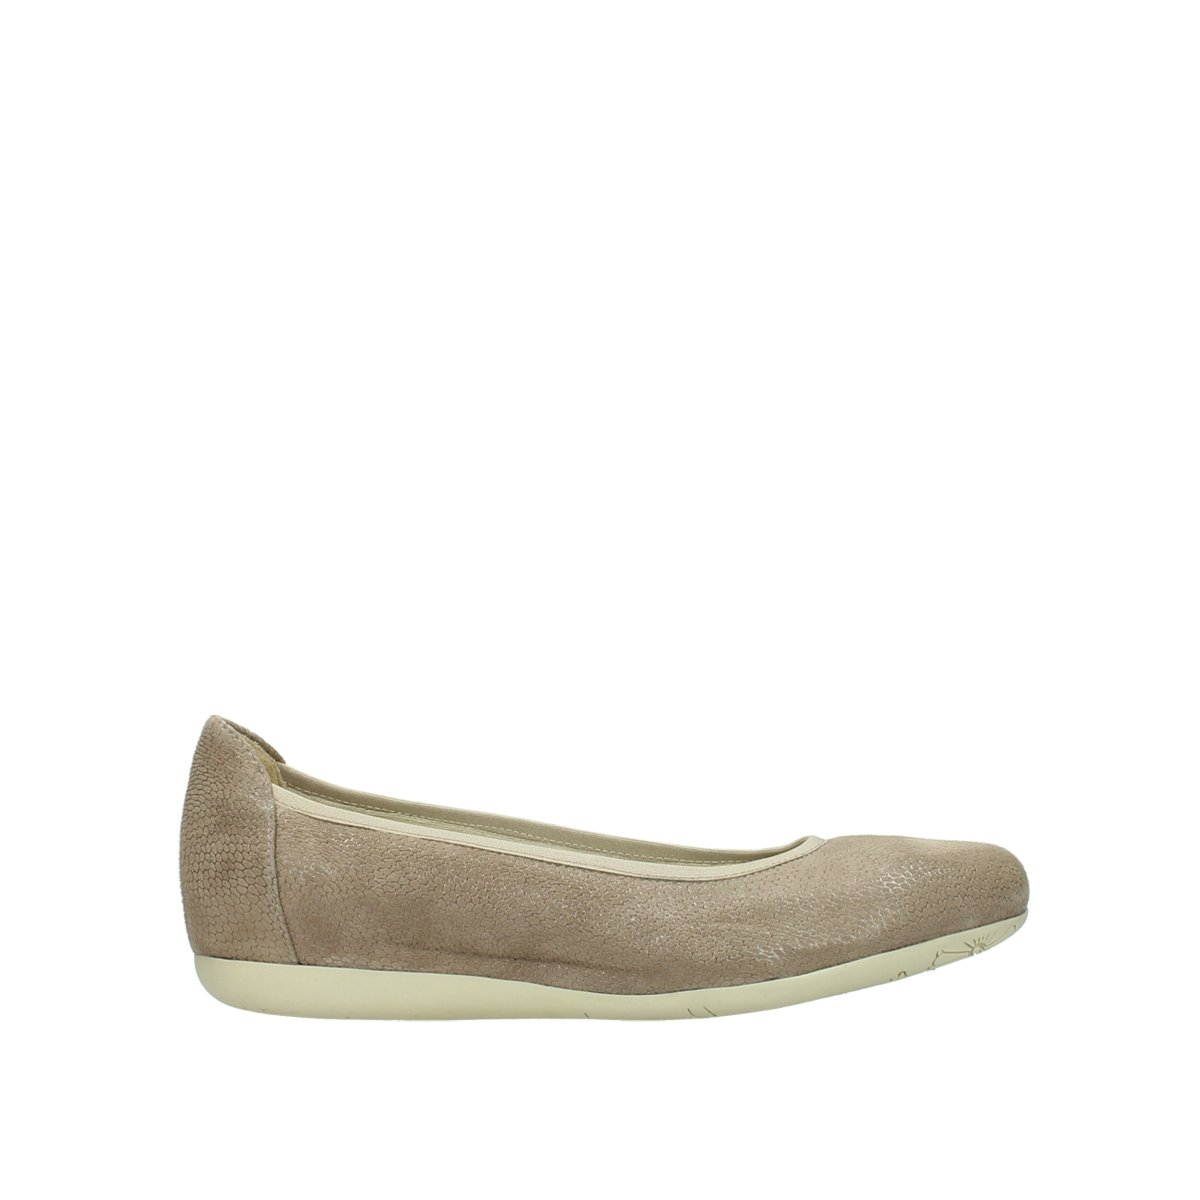 Wolky Comfort Ballet Pumps Tampa B079MCZBTM 36 EU|20150 Taupe Leather